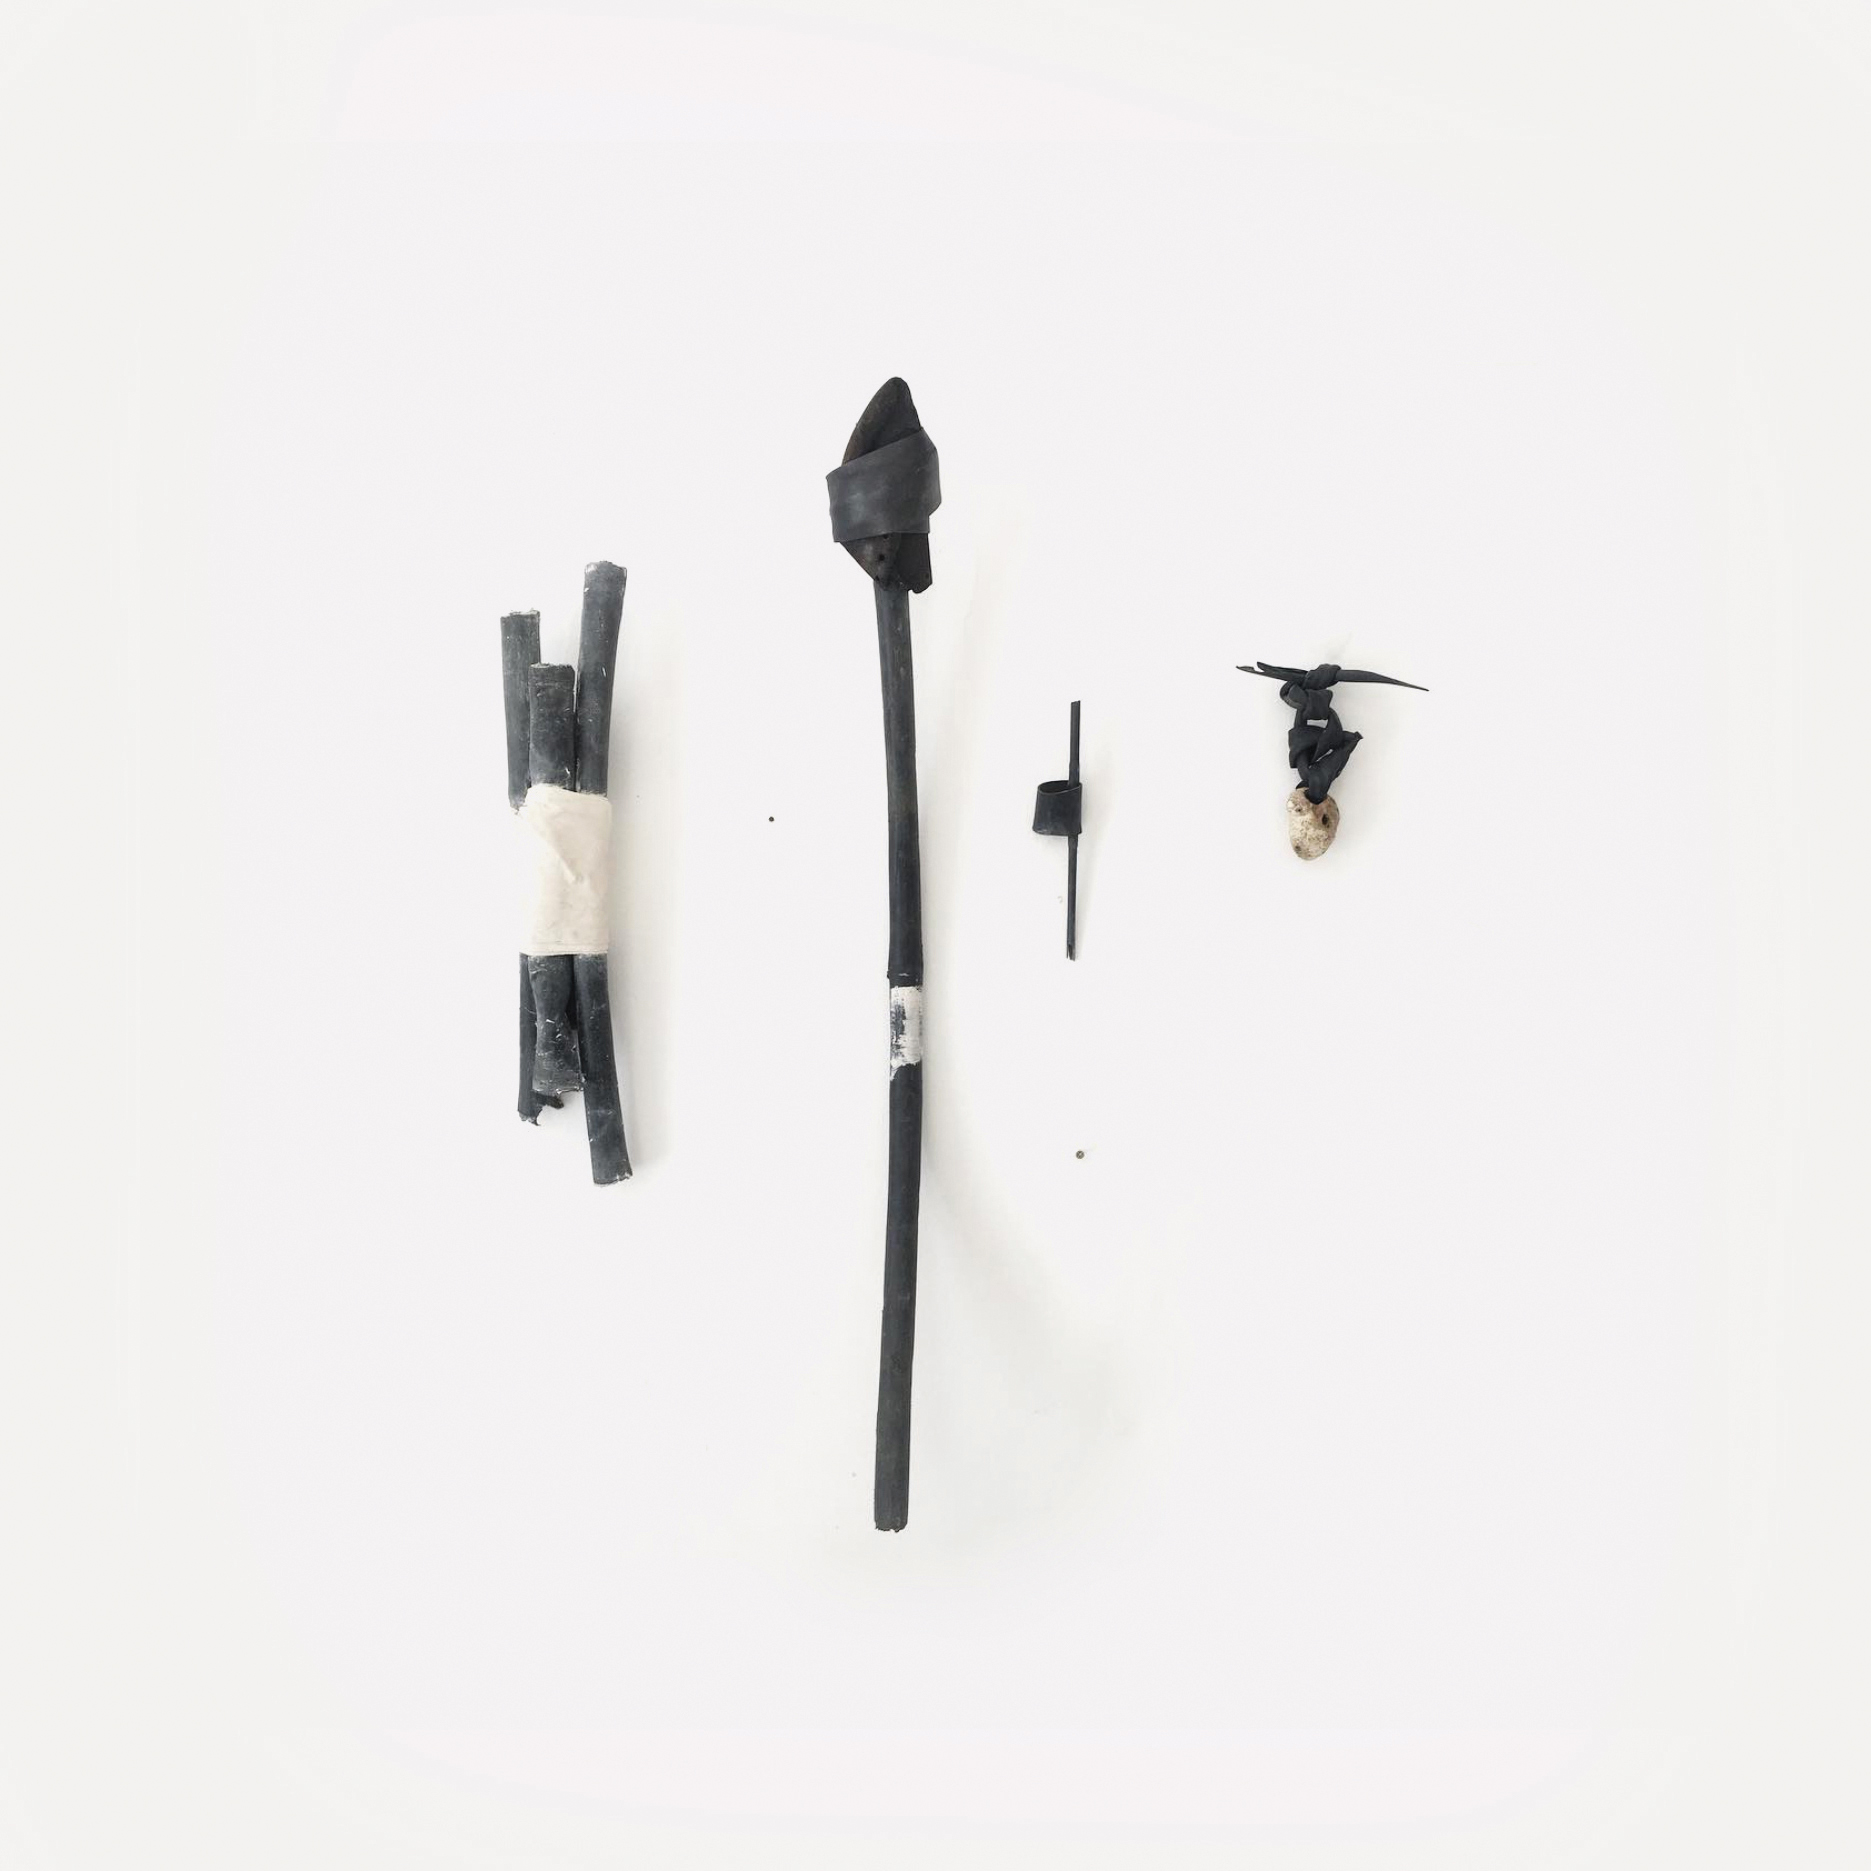 Jamie Mills 'Fugitive Devices'